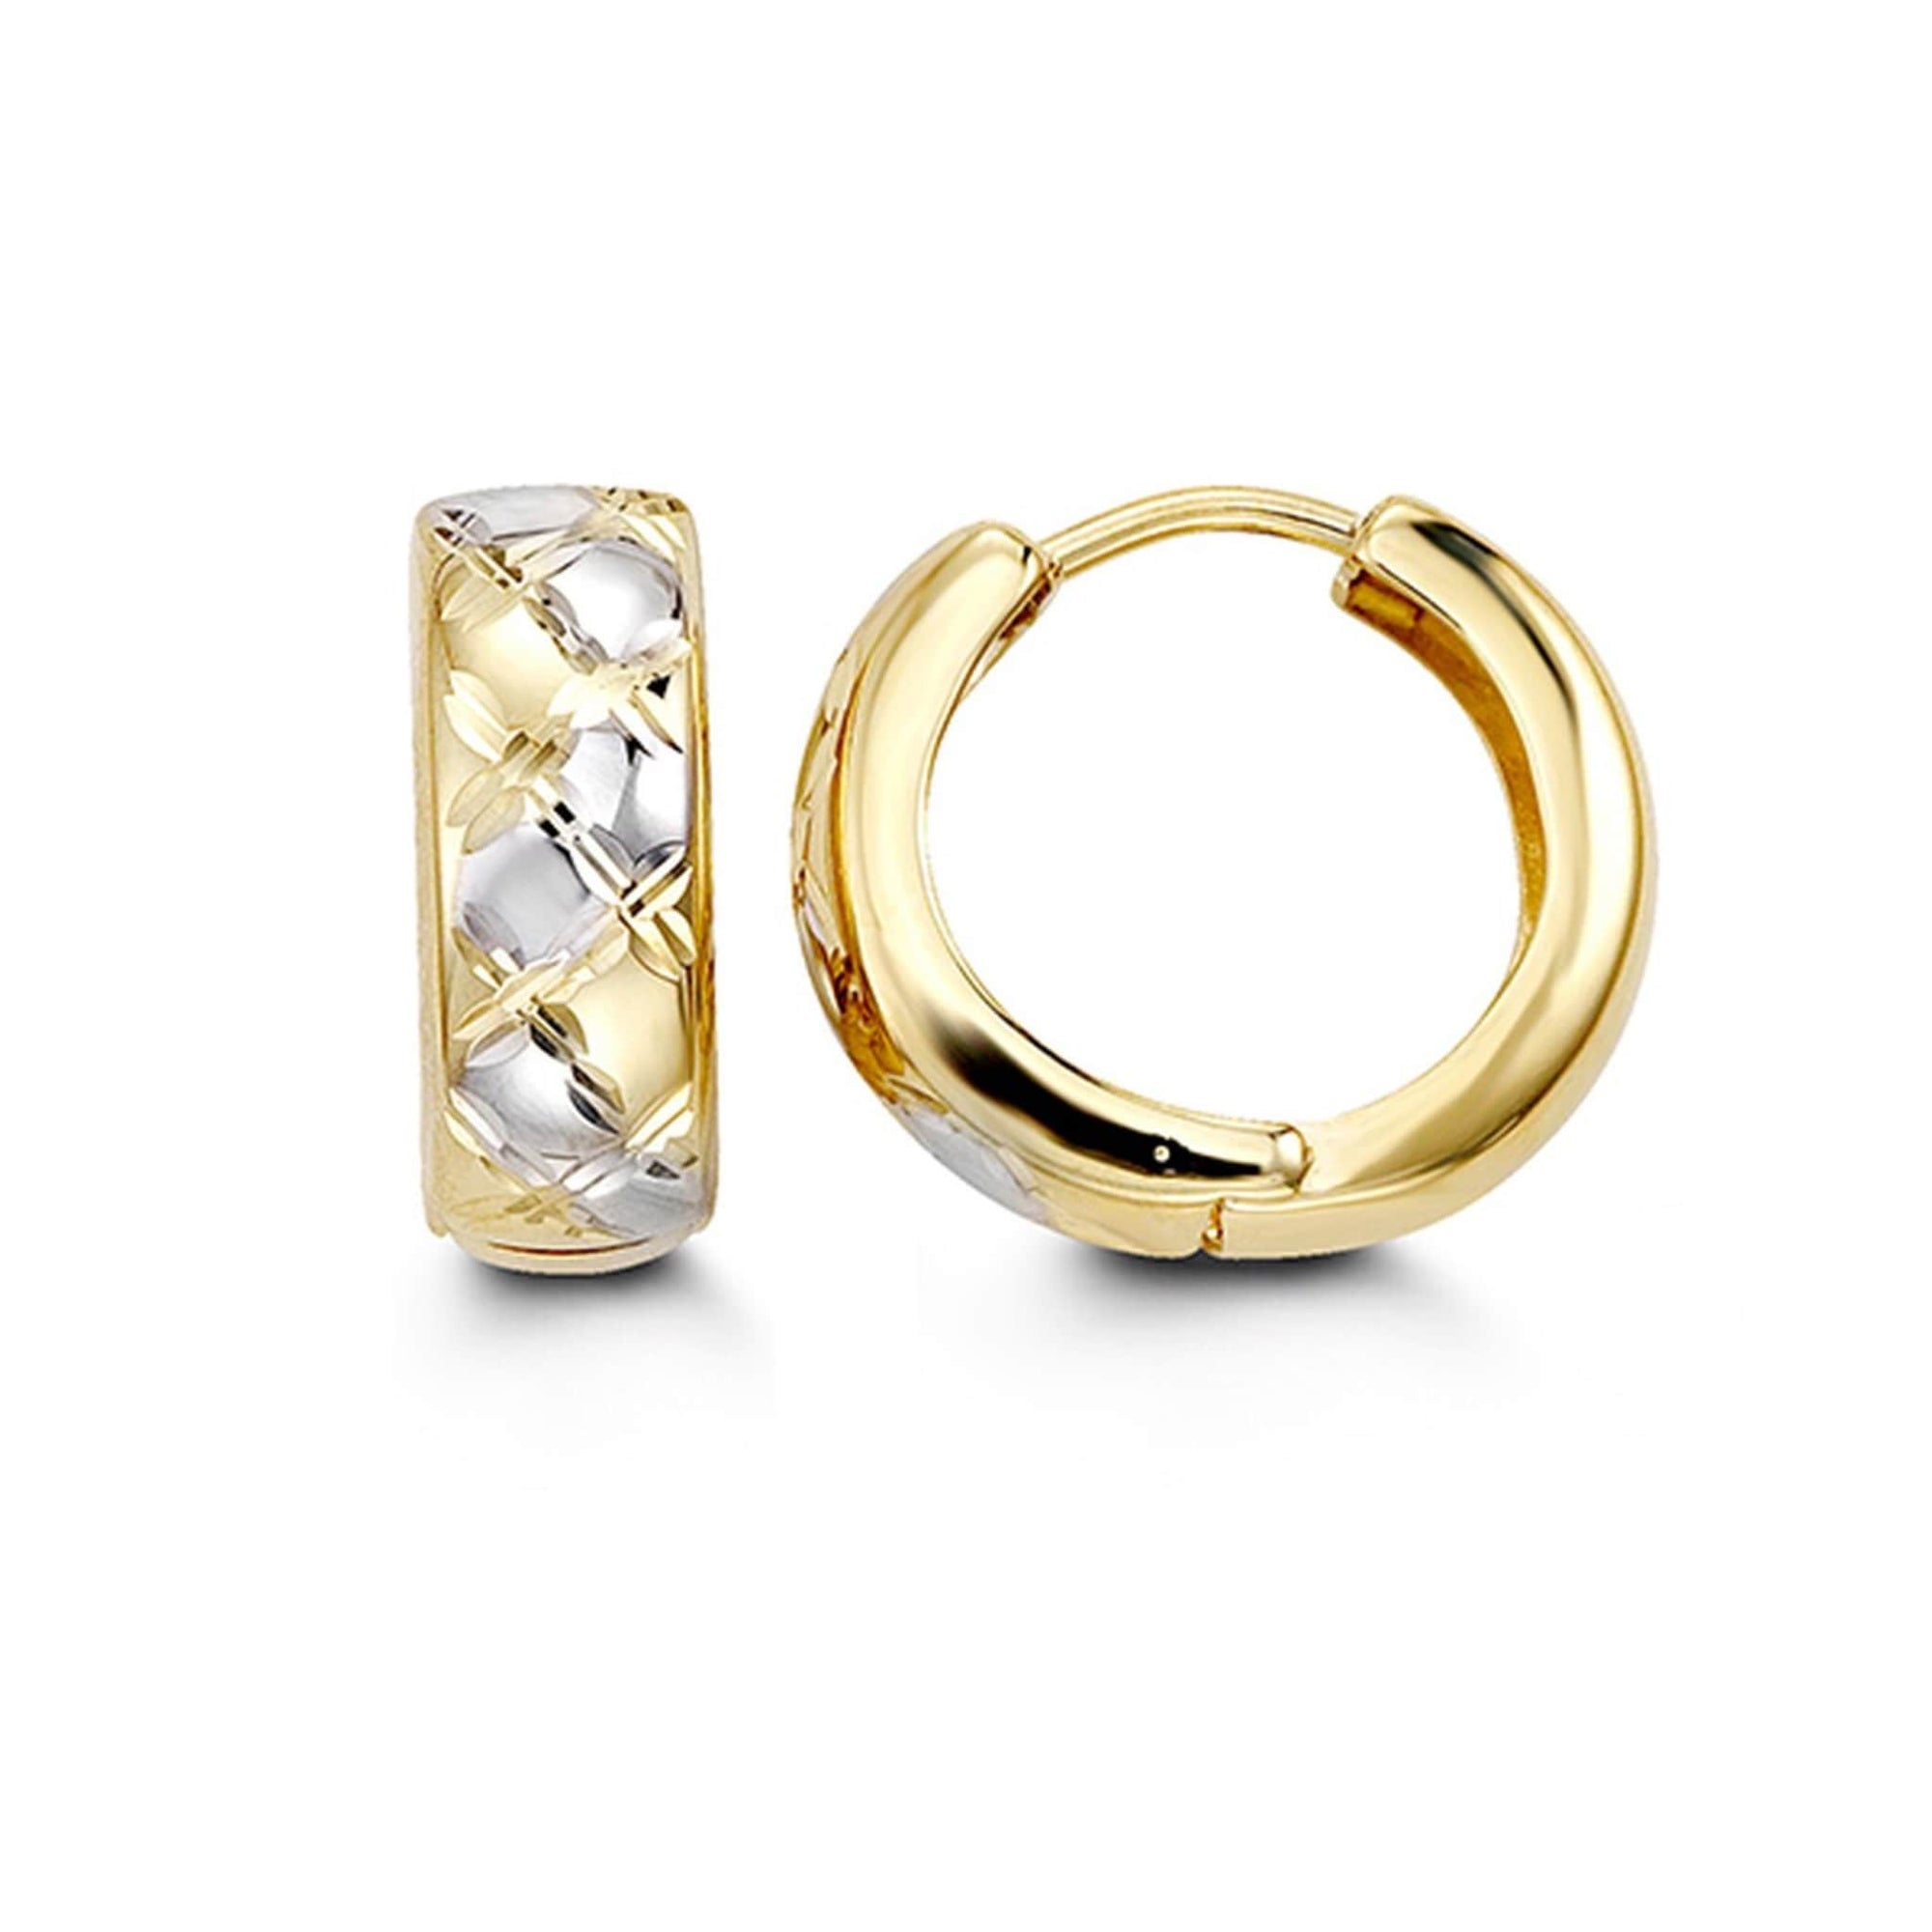 10K Two-Tone Fancy Huggie Hoop Earrings at Arman's Jewellers